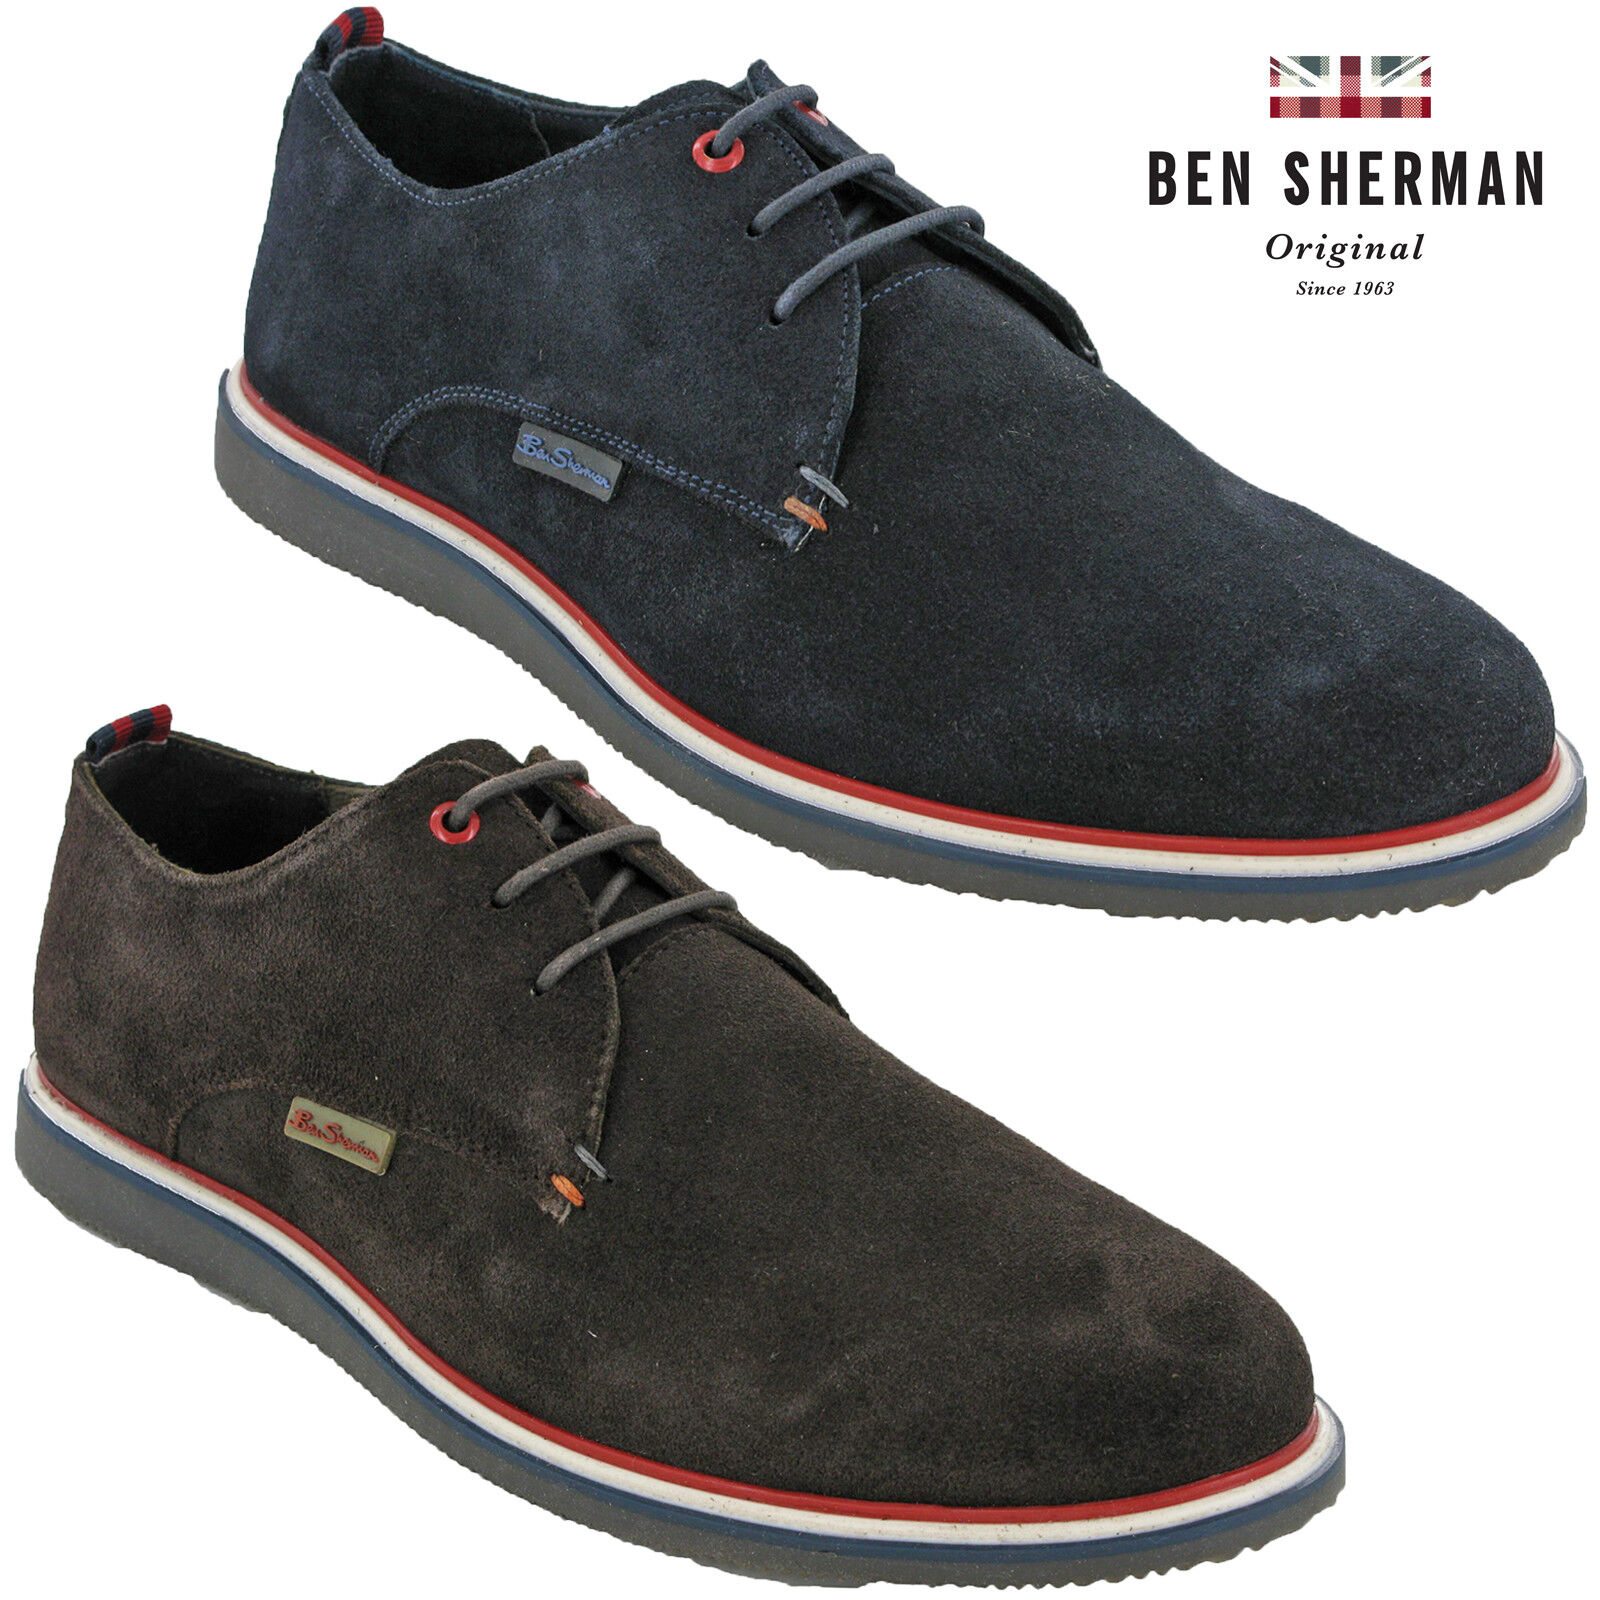 Ben Sherman Casual schuhe Suede Leather Work Mens Flat Fashion Trainers Lace